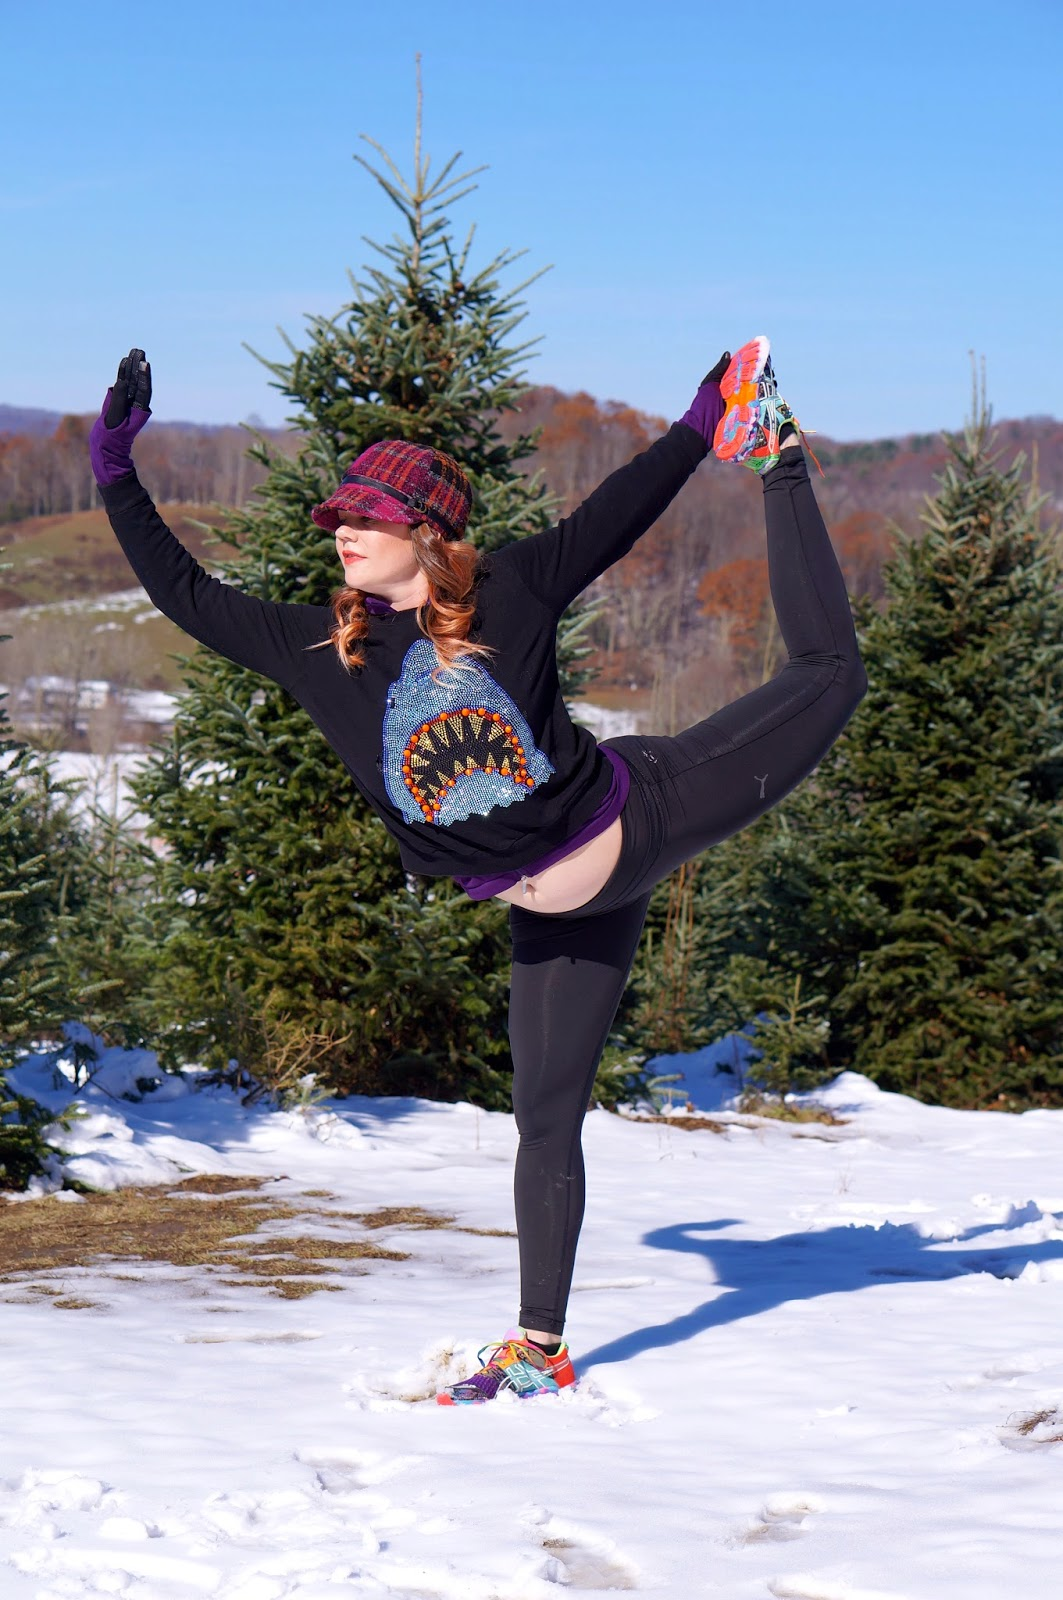 The Virginia Creeper Trail,Pumpkin Patch,Christmas Tree Farm,Biking,National Forest,Snow,yoga,dancers pose,head stand pose.